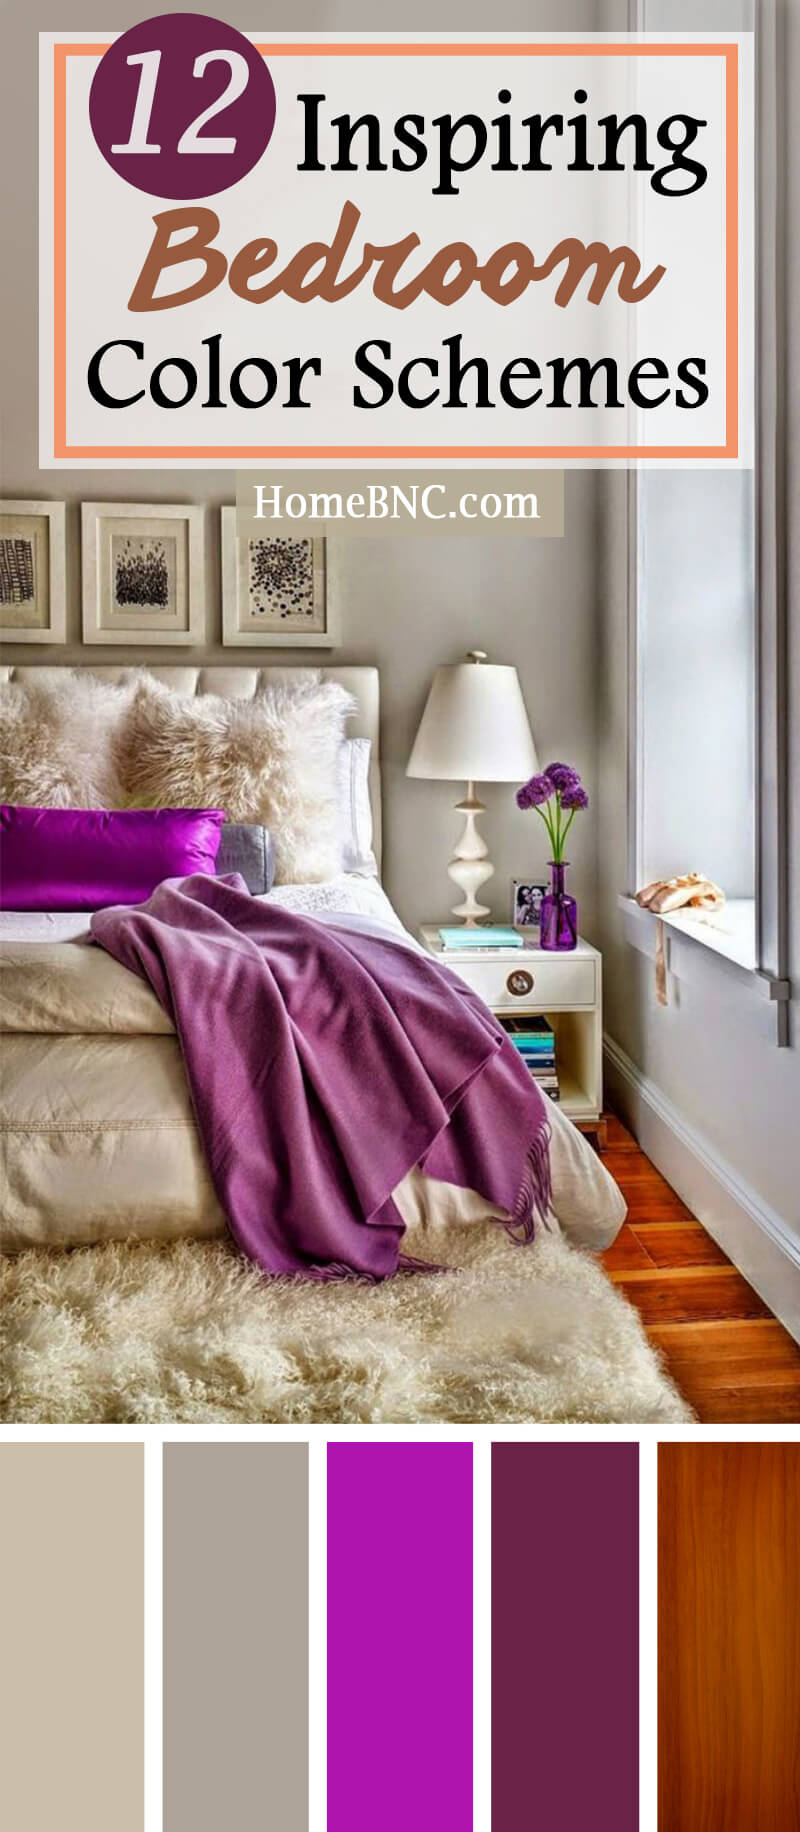 12 Best Bedroom Color Scheme Ideas And Designs For 2019 inside dimensions 800 X 1832